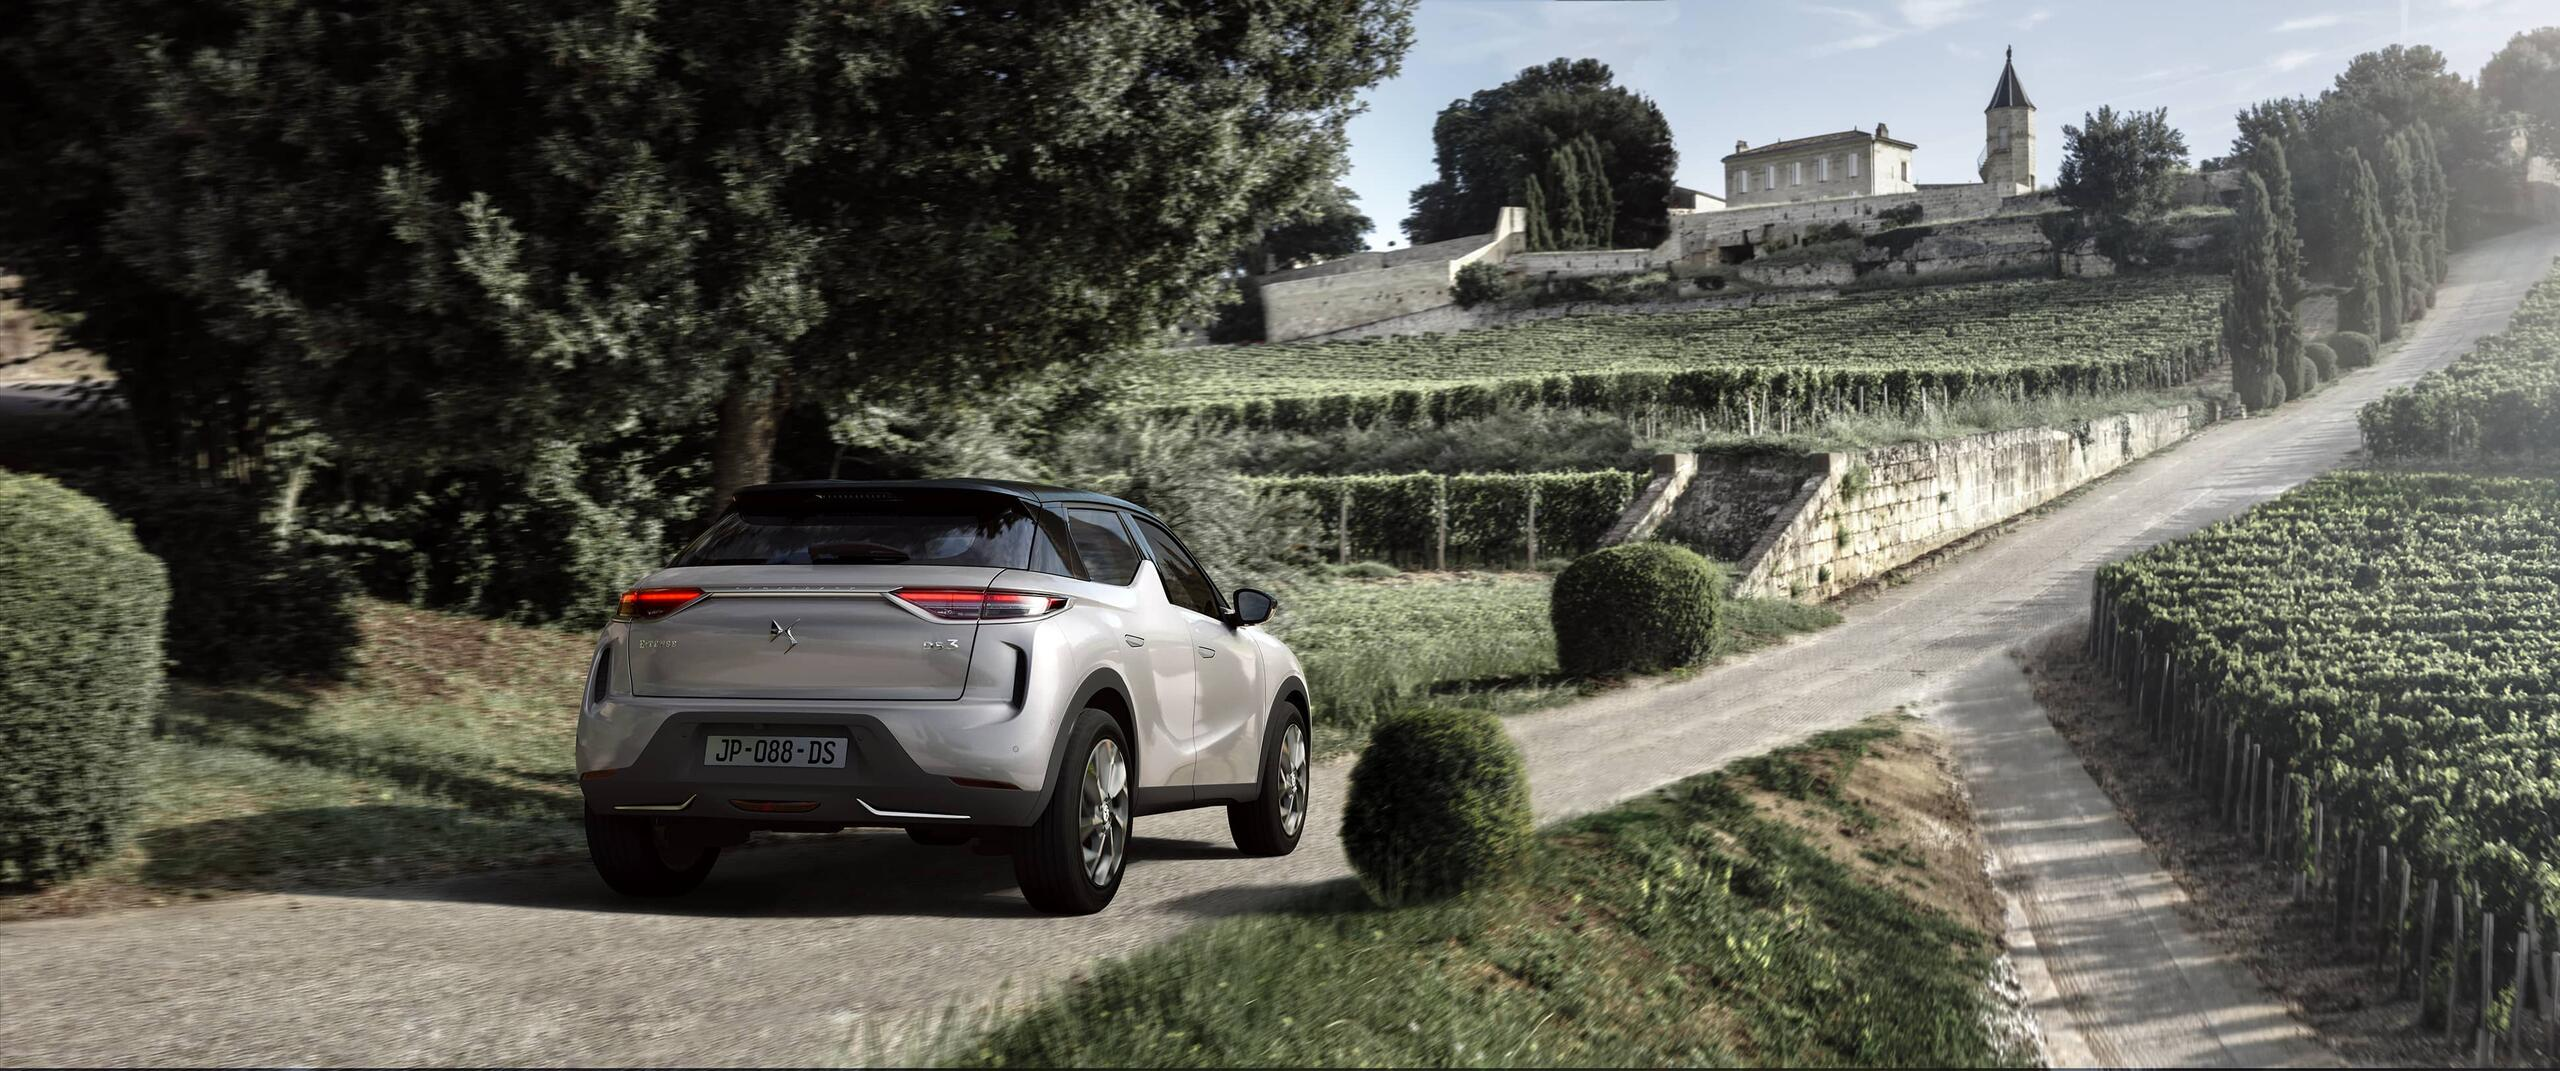 DS 3 driving down gravel road